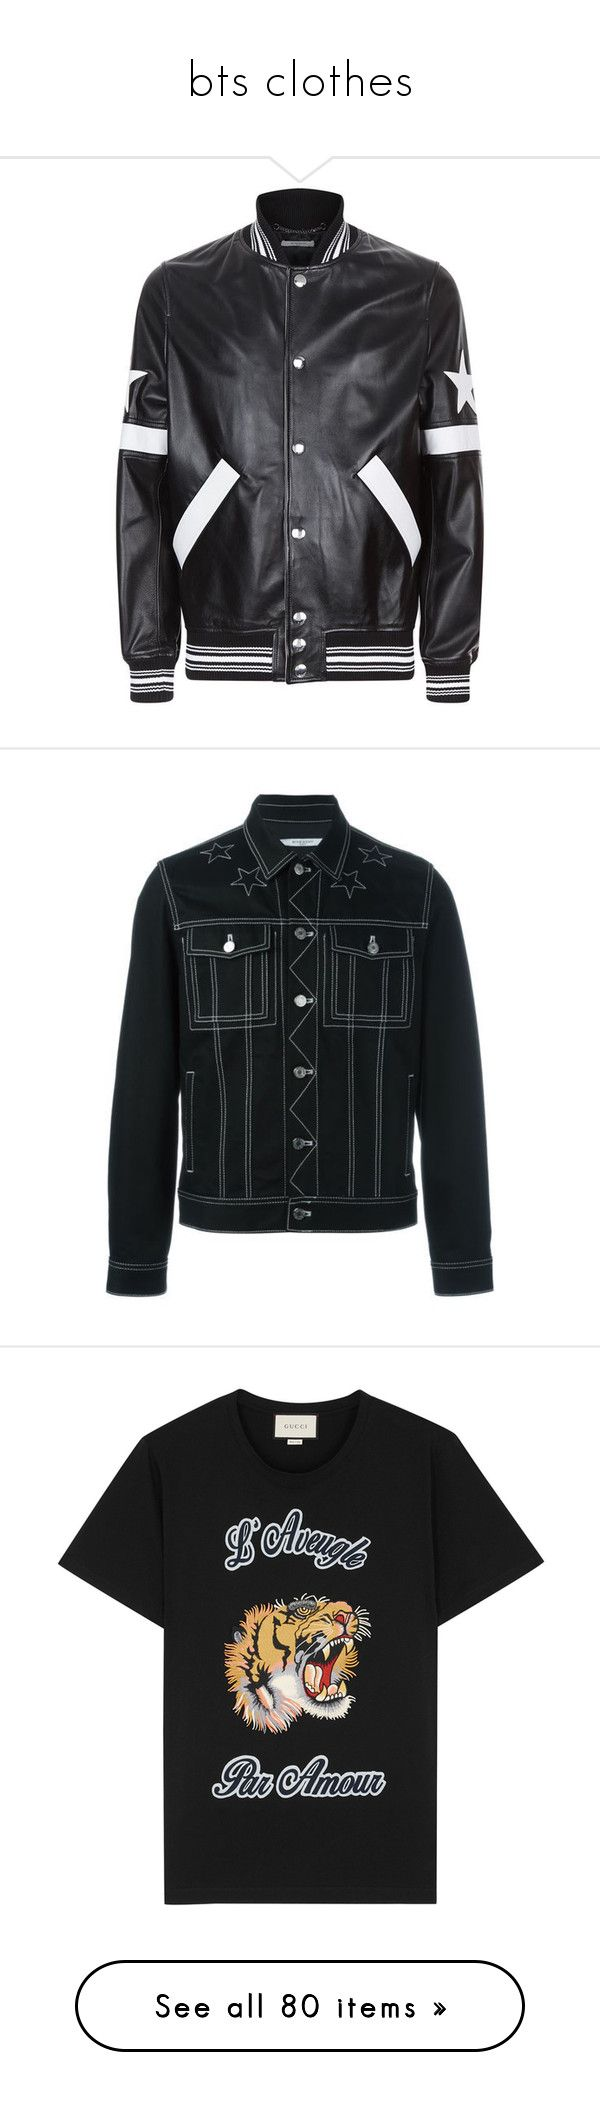 """""""bts clothes"""" by night-circus ❤ liked on Polyvore featuring men's fashion, men's clothing, men's outerwear, men's jackets, givenchy mens jacket, mens leather bomber jacket, g star mens jacket, mens leather jackets, mens leather flight jacket and givenchy"""